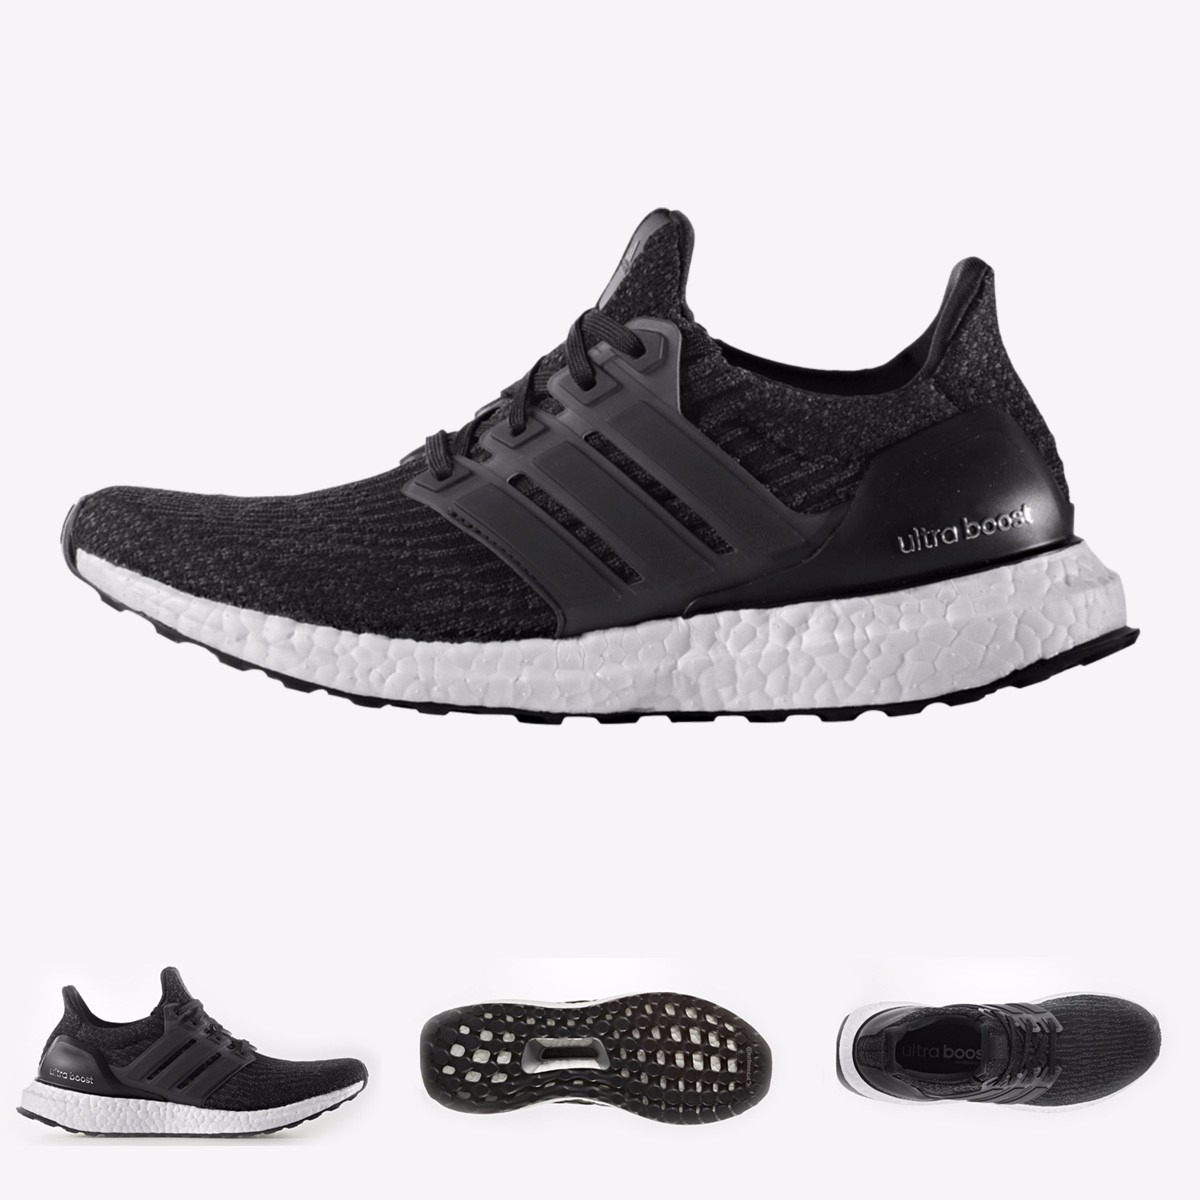 brand new 33c16 71b59 zapatillas adidas ultraboost uncaged   2017 100% original. Cargando zoom.